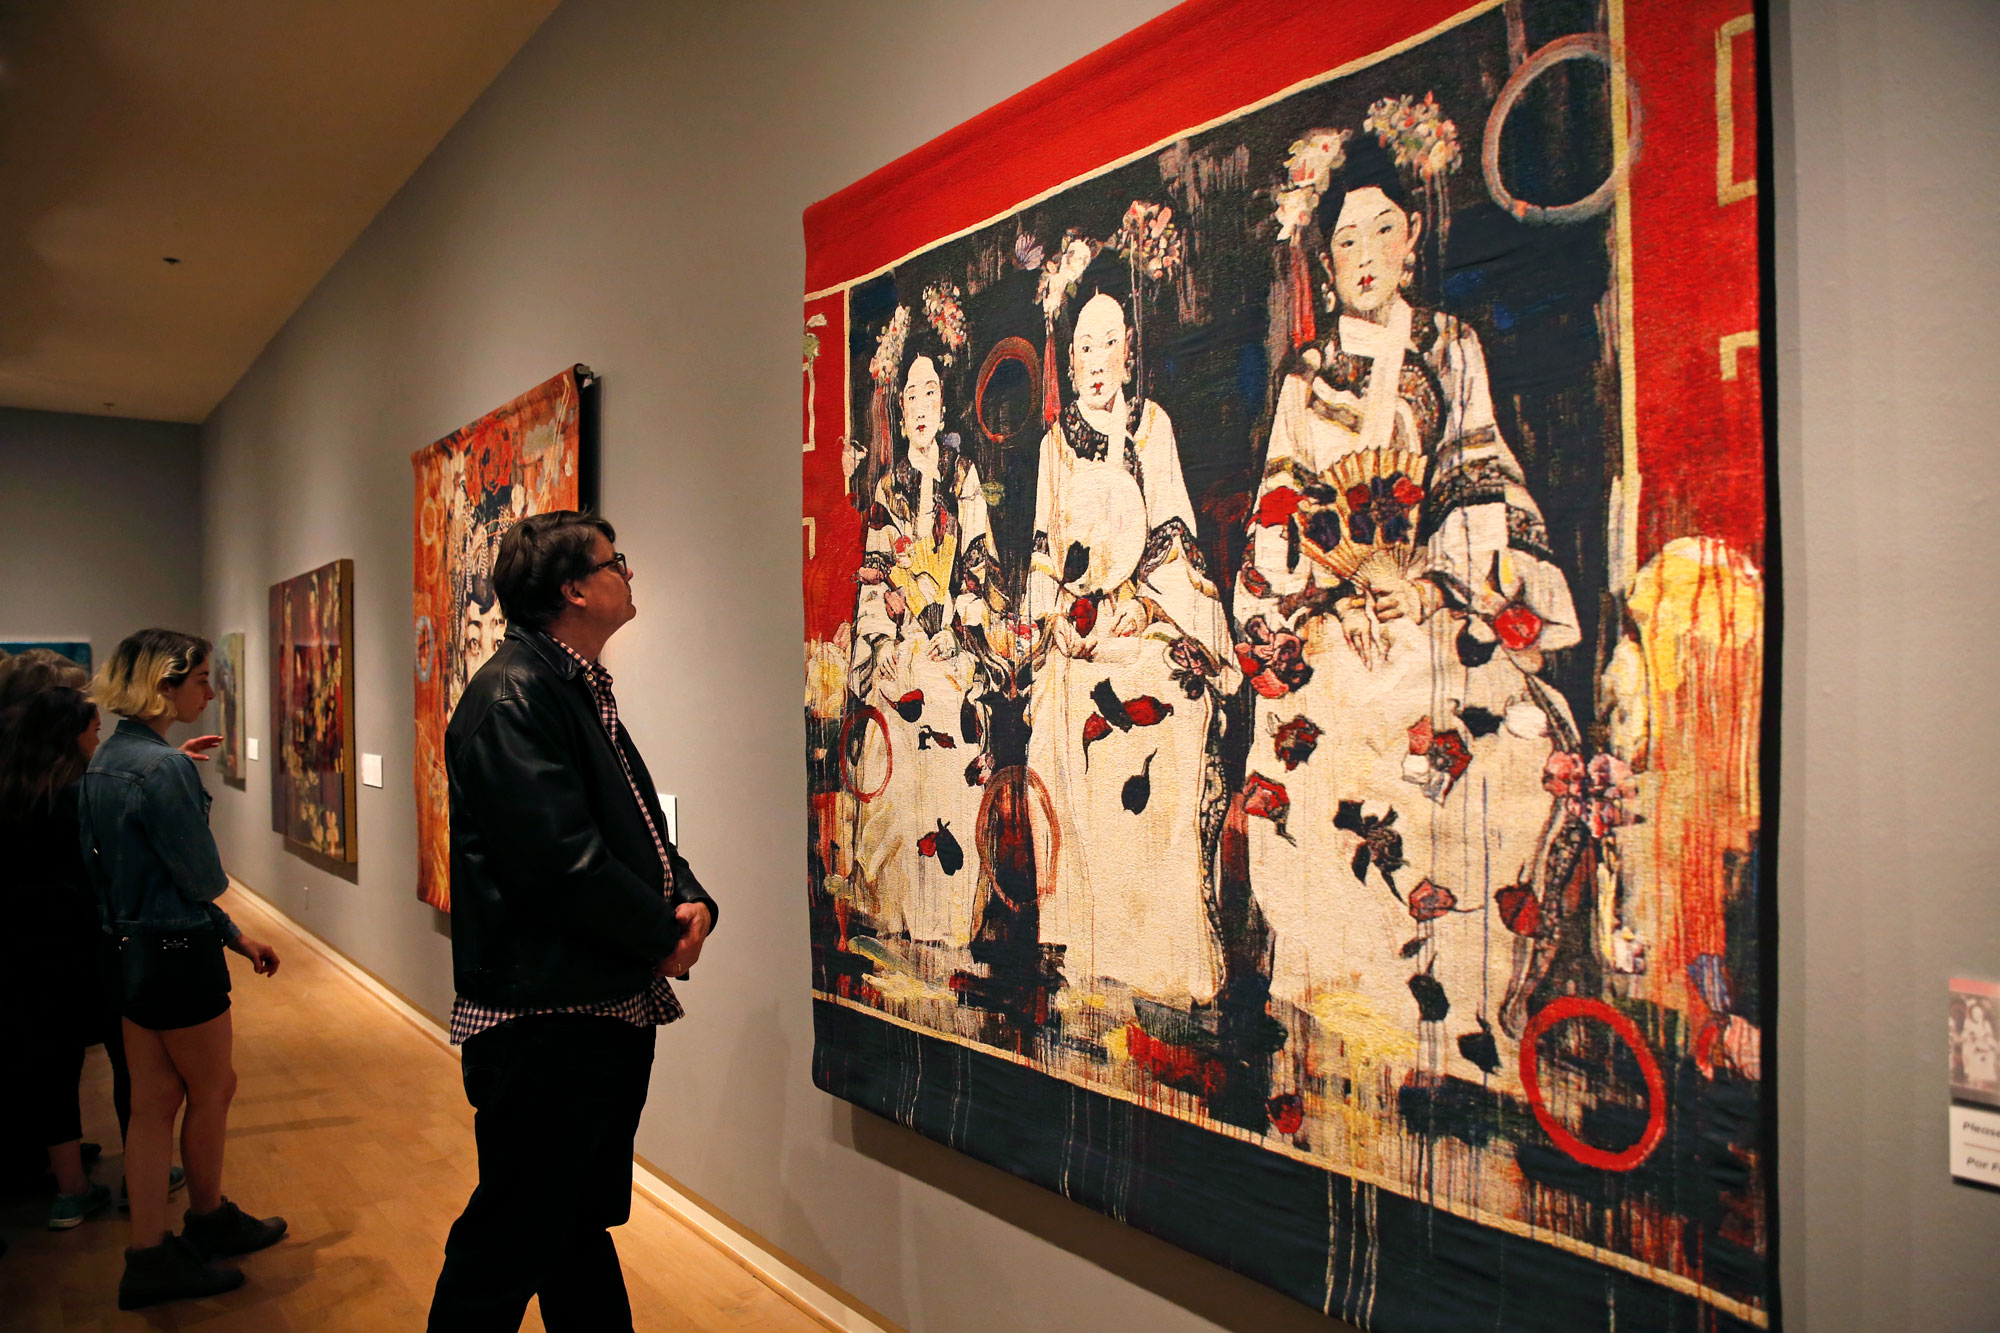 """Three Fujin of a Prince"" is just one of the several jacquard tapestries created by Hung Liu. The pattern in these tapestries are woven together to create intricate and vibrant images without the use of printed textile. Photo by Casey Amaral"